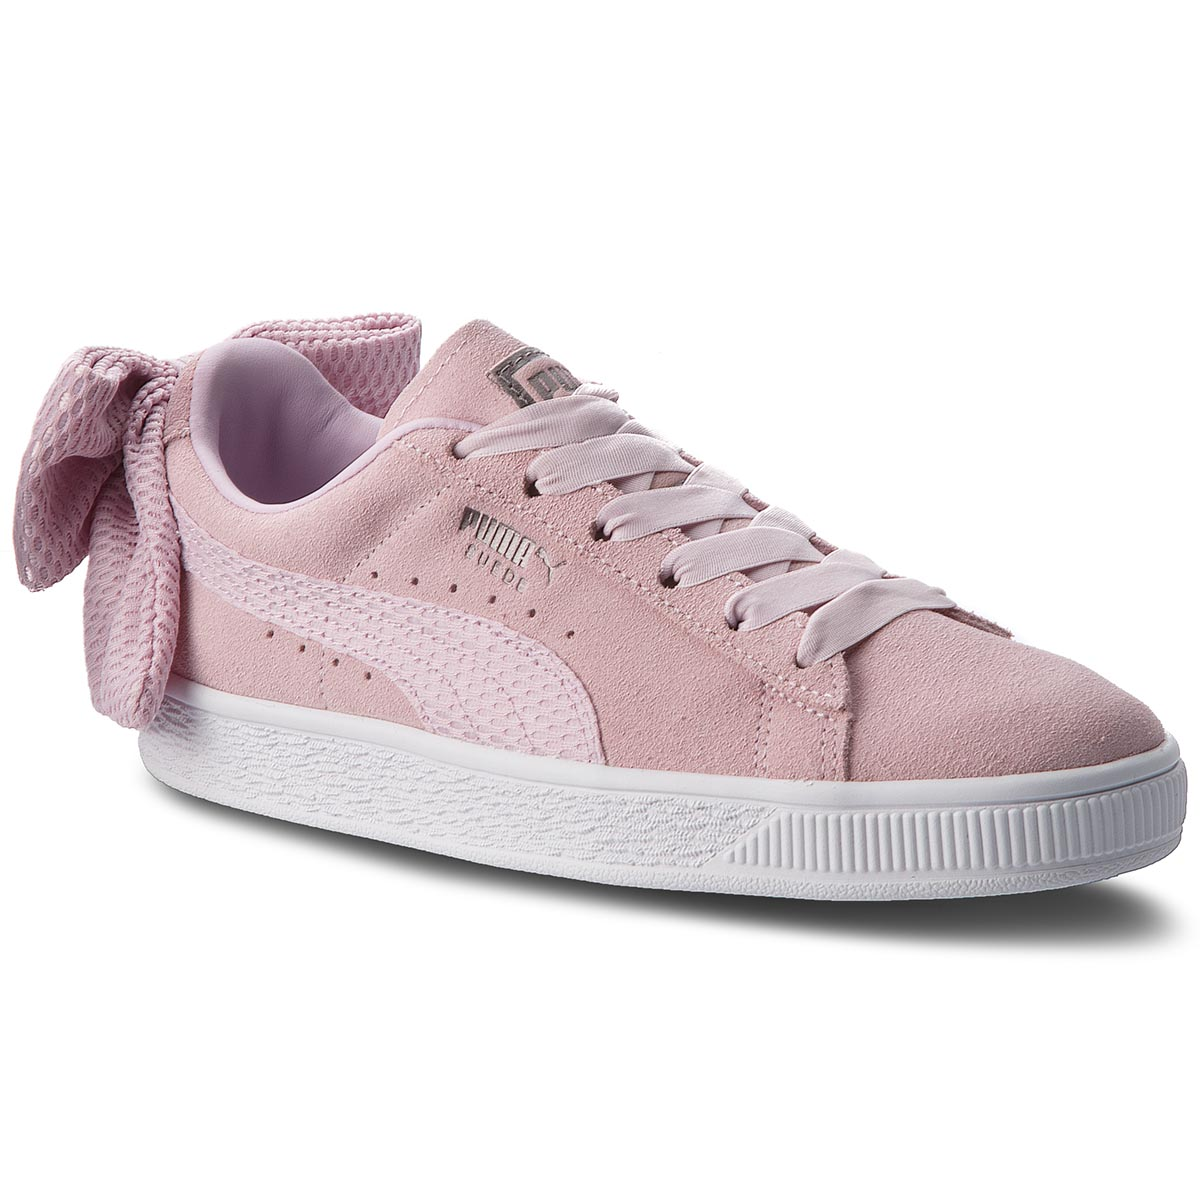 Sneakersy PUMA – Suede Bow Uprising Wn's 367455 03 Winsome Orchid/Puma White